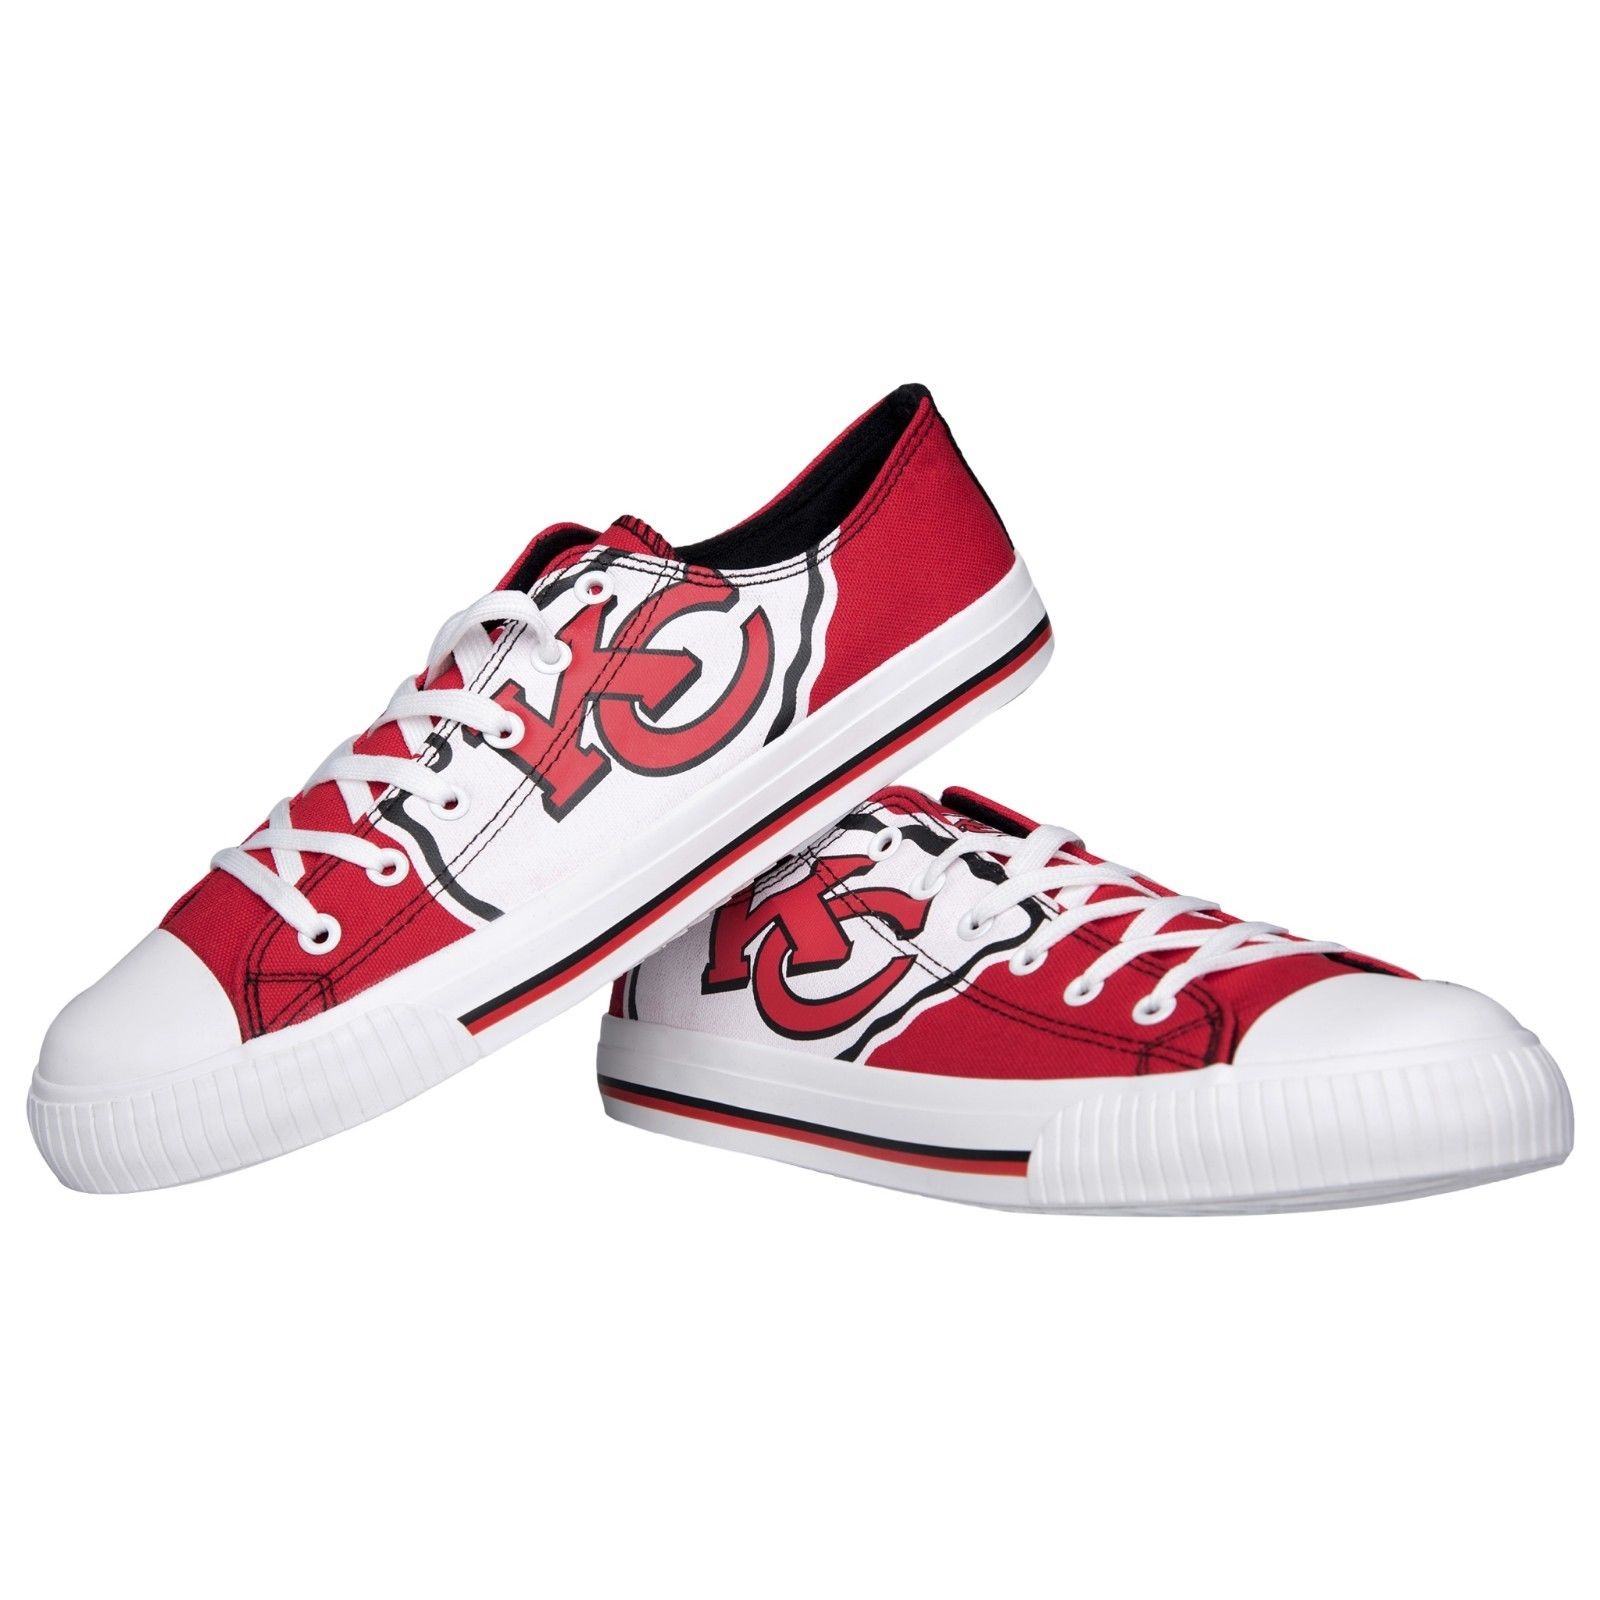 Women's NFL Kansas City Chiefs Repeat Print Low Top Sneakers 008